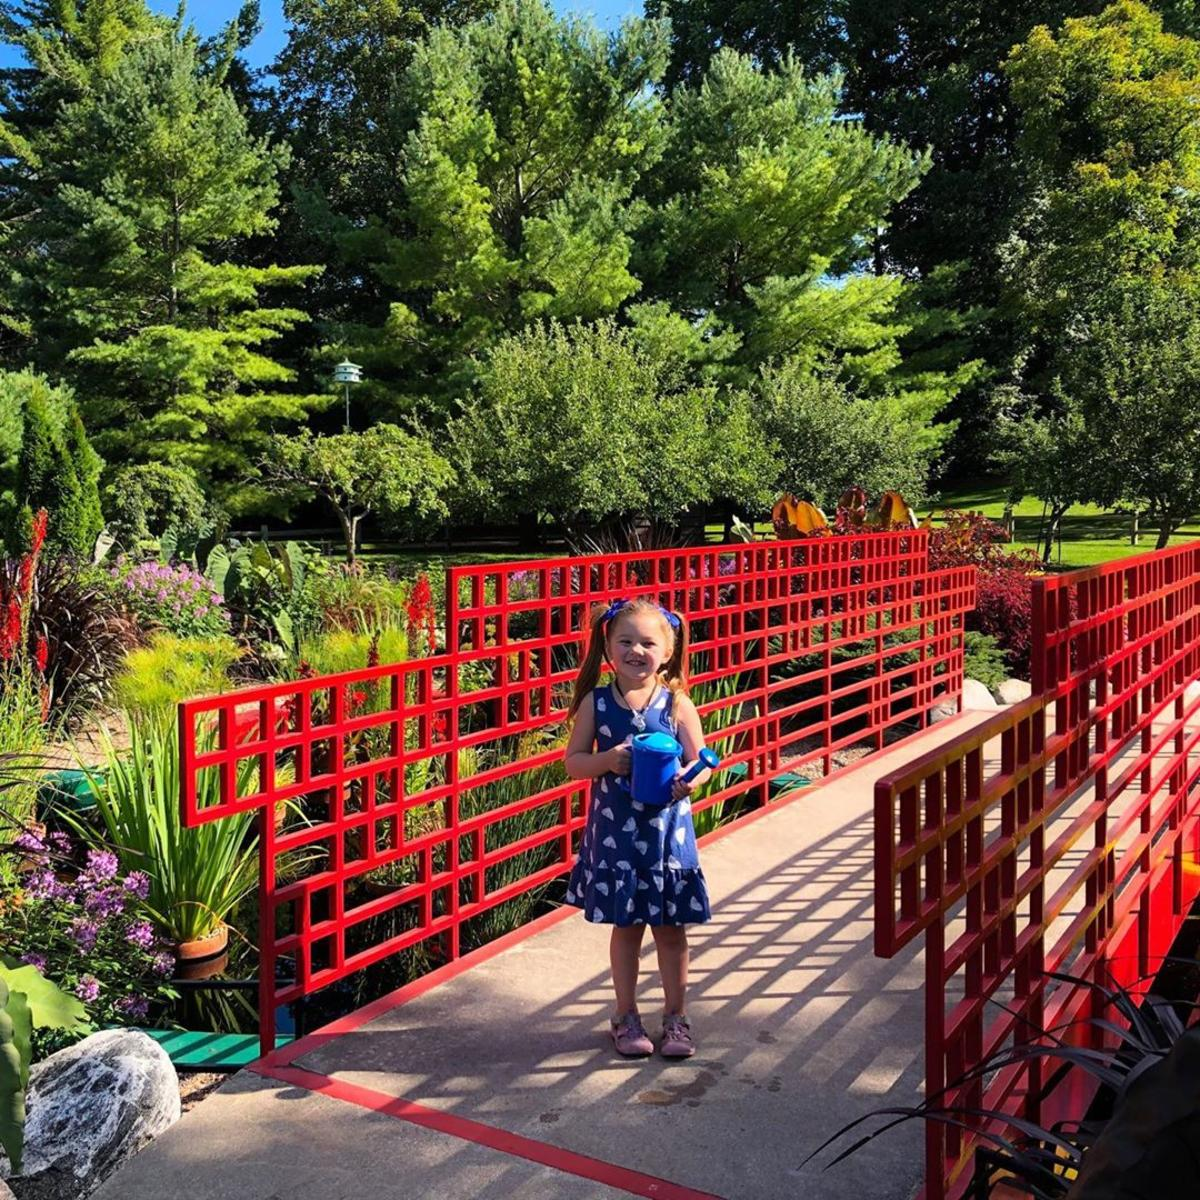 Little girl posing with a watering can at Dow Gardens in Midland